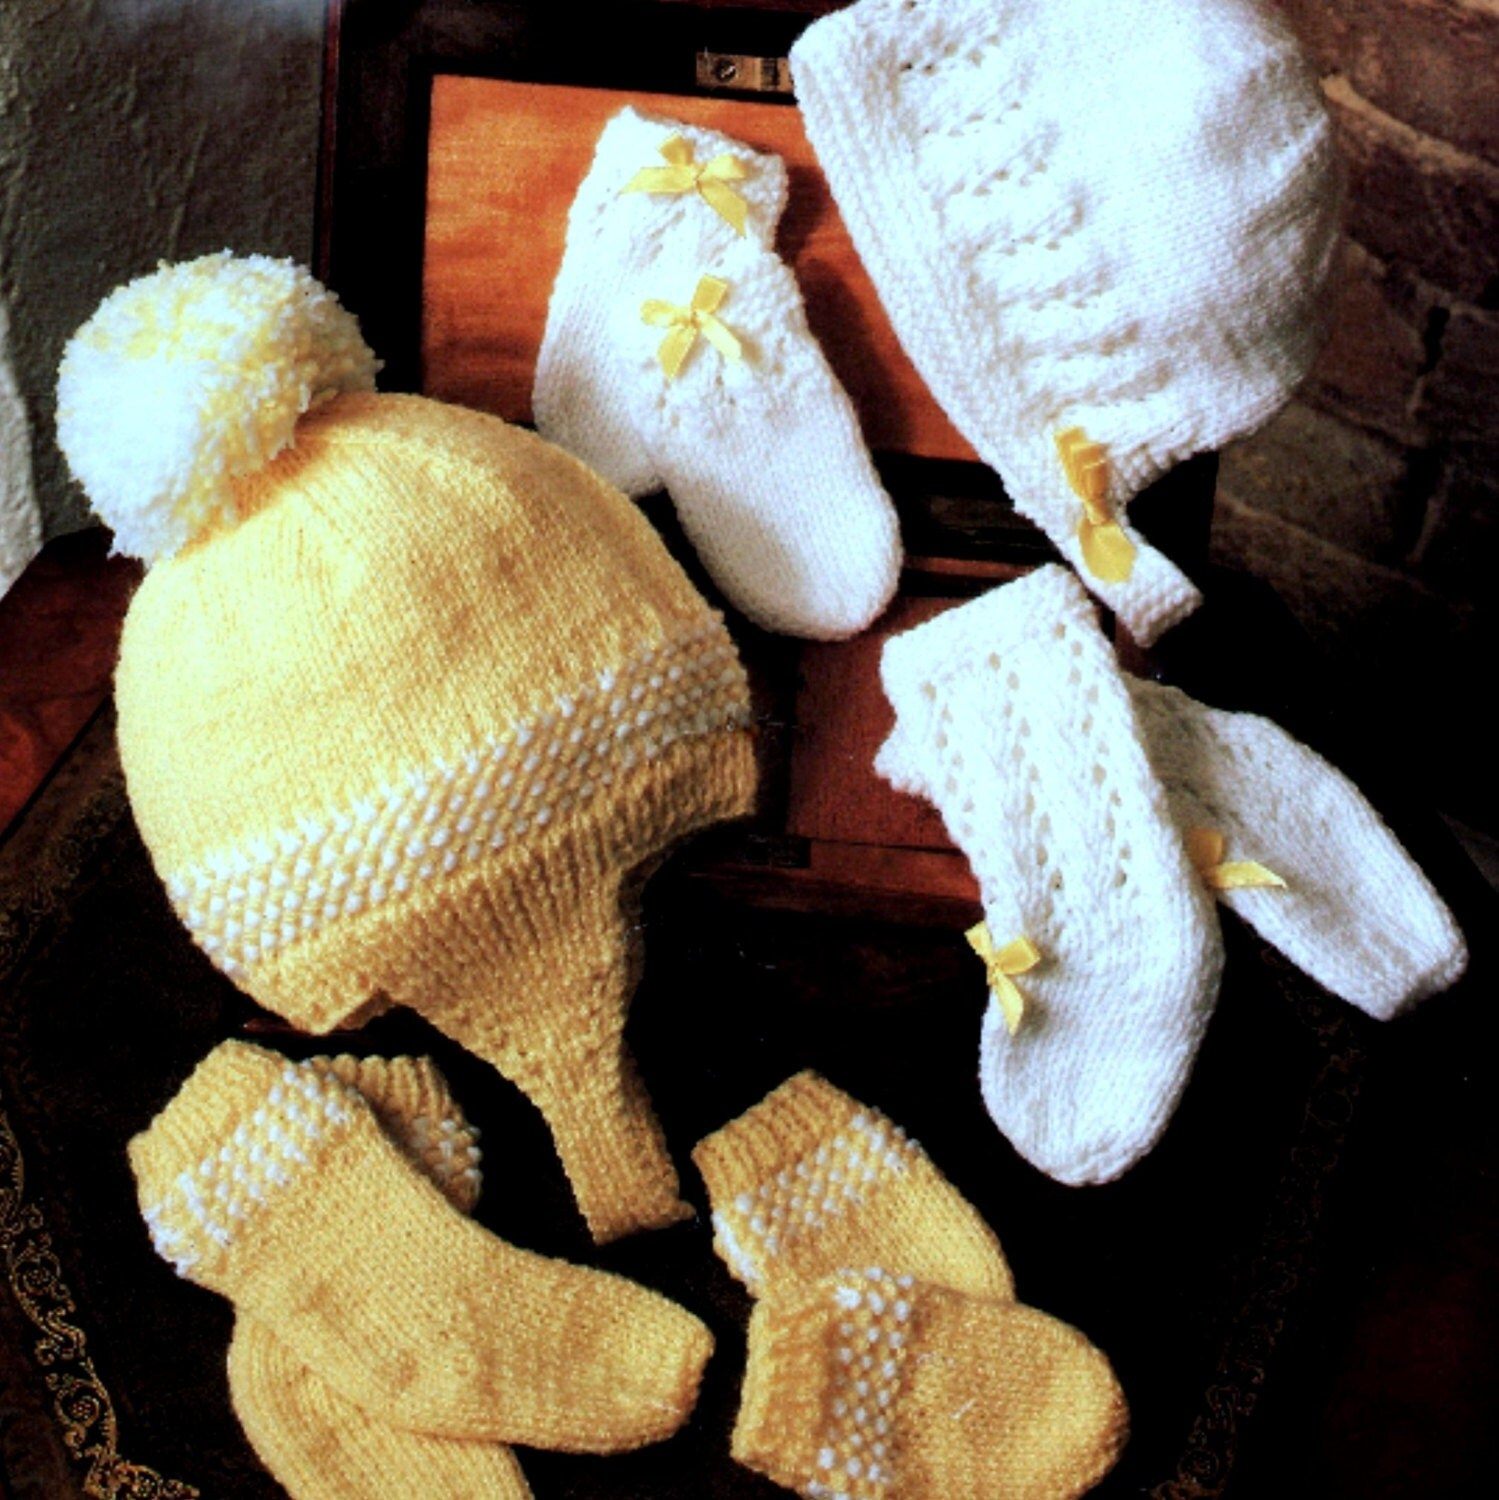 Knitting Pattern Vintage Hat : Vintage Knitting Pattern Baby Hat Socks and Mitts 2 Sets